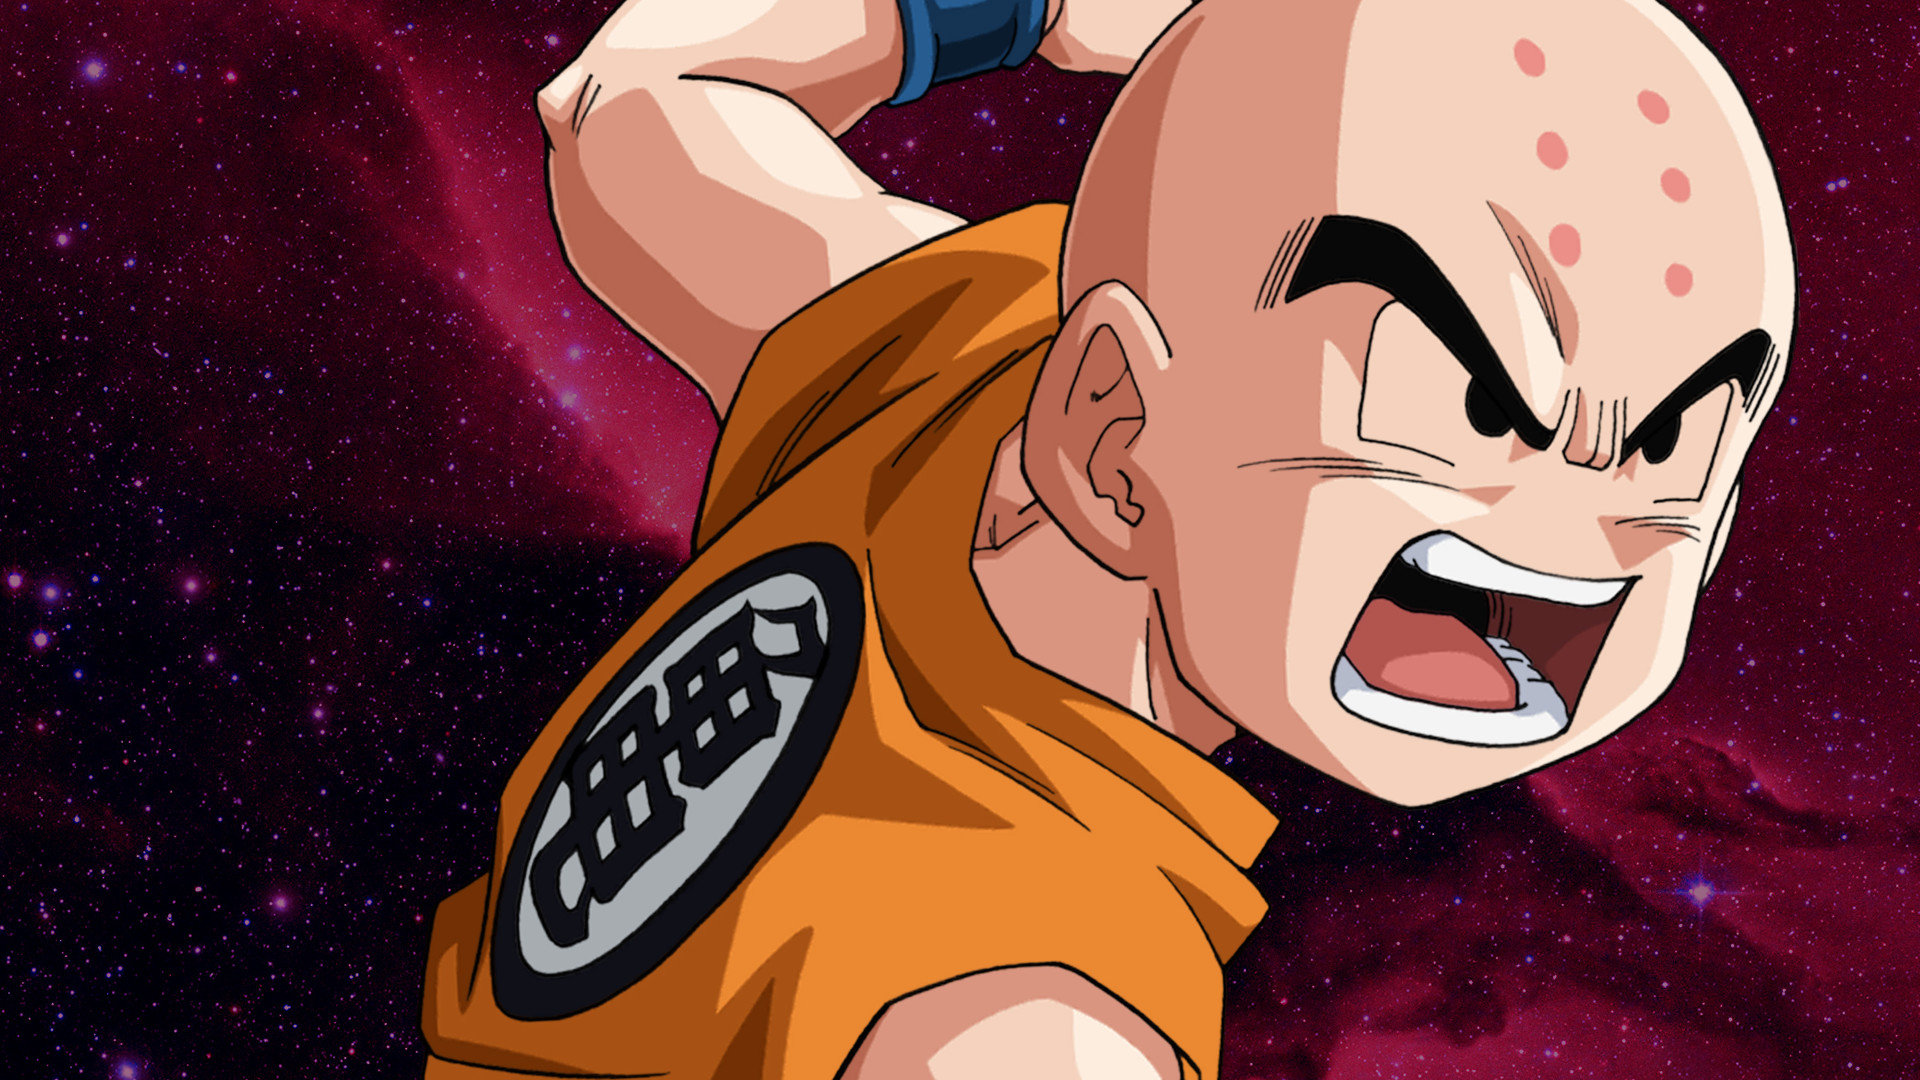 Awesome Dragon Ball Z: Resurrection Of F free background ID:391549 for hd 1920x1080 PC